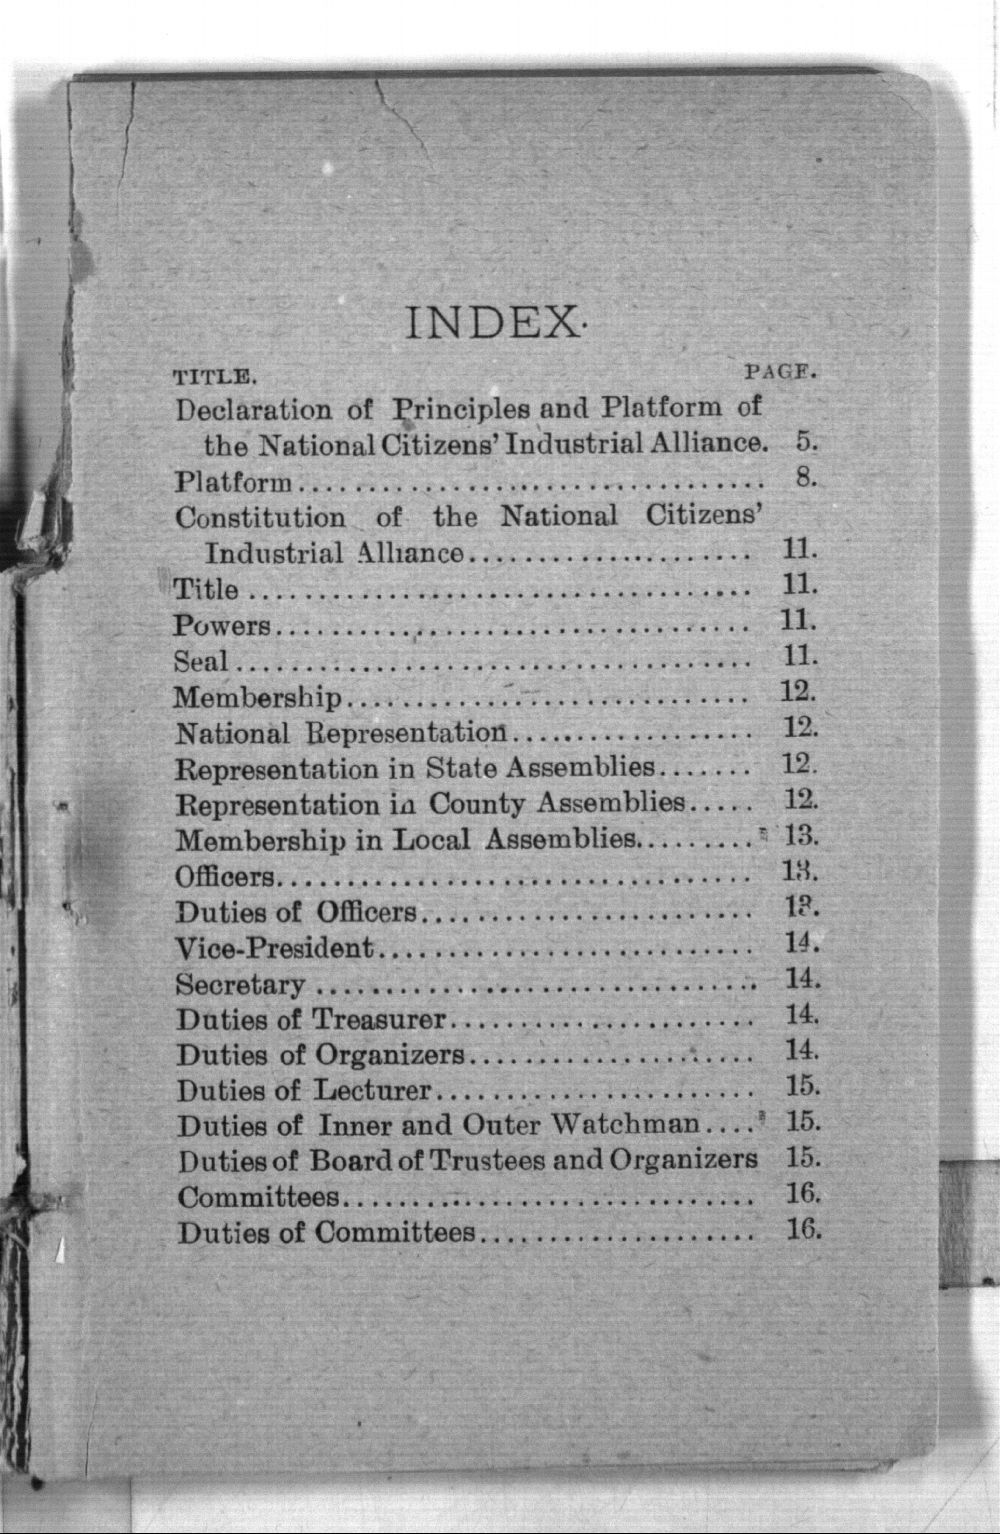 Declaration of principles, platform, constitution and by-laws of the National Citizens' Industrial Alliance and proceeding of the National Assembly held at Topeka, January 13 to 17, 1891 - Index